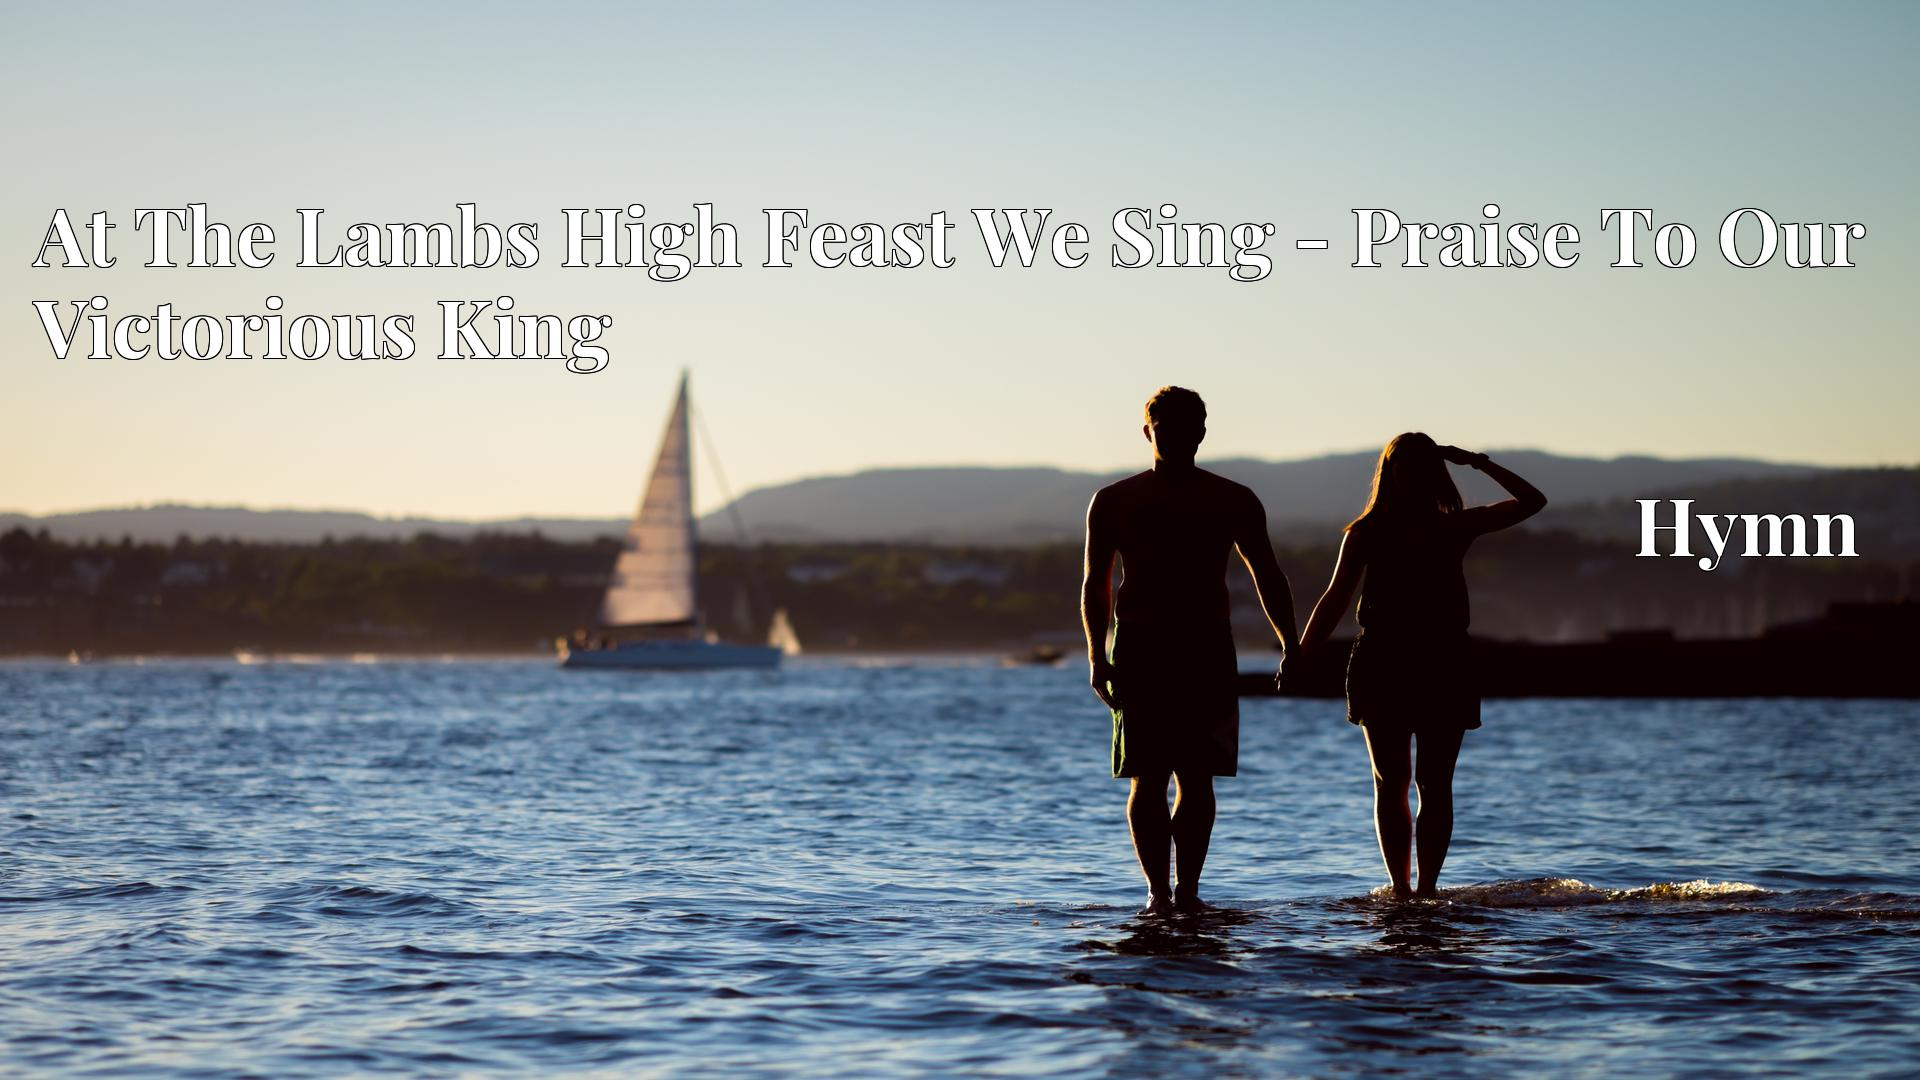 At The Lambs High Feast We Sing - Praise To Our Victorious King - Hymn